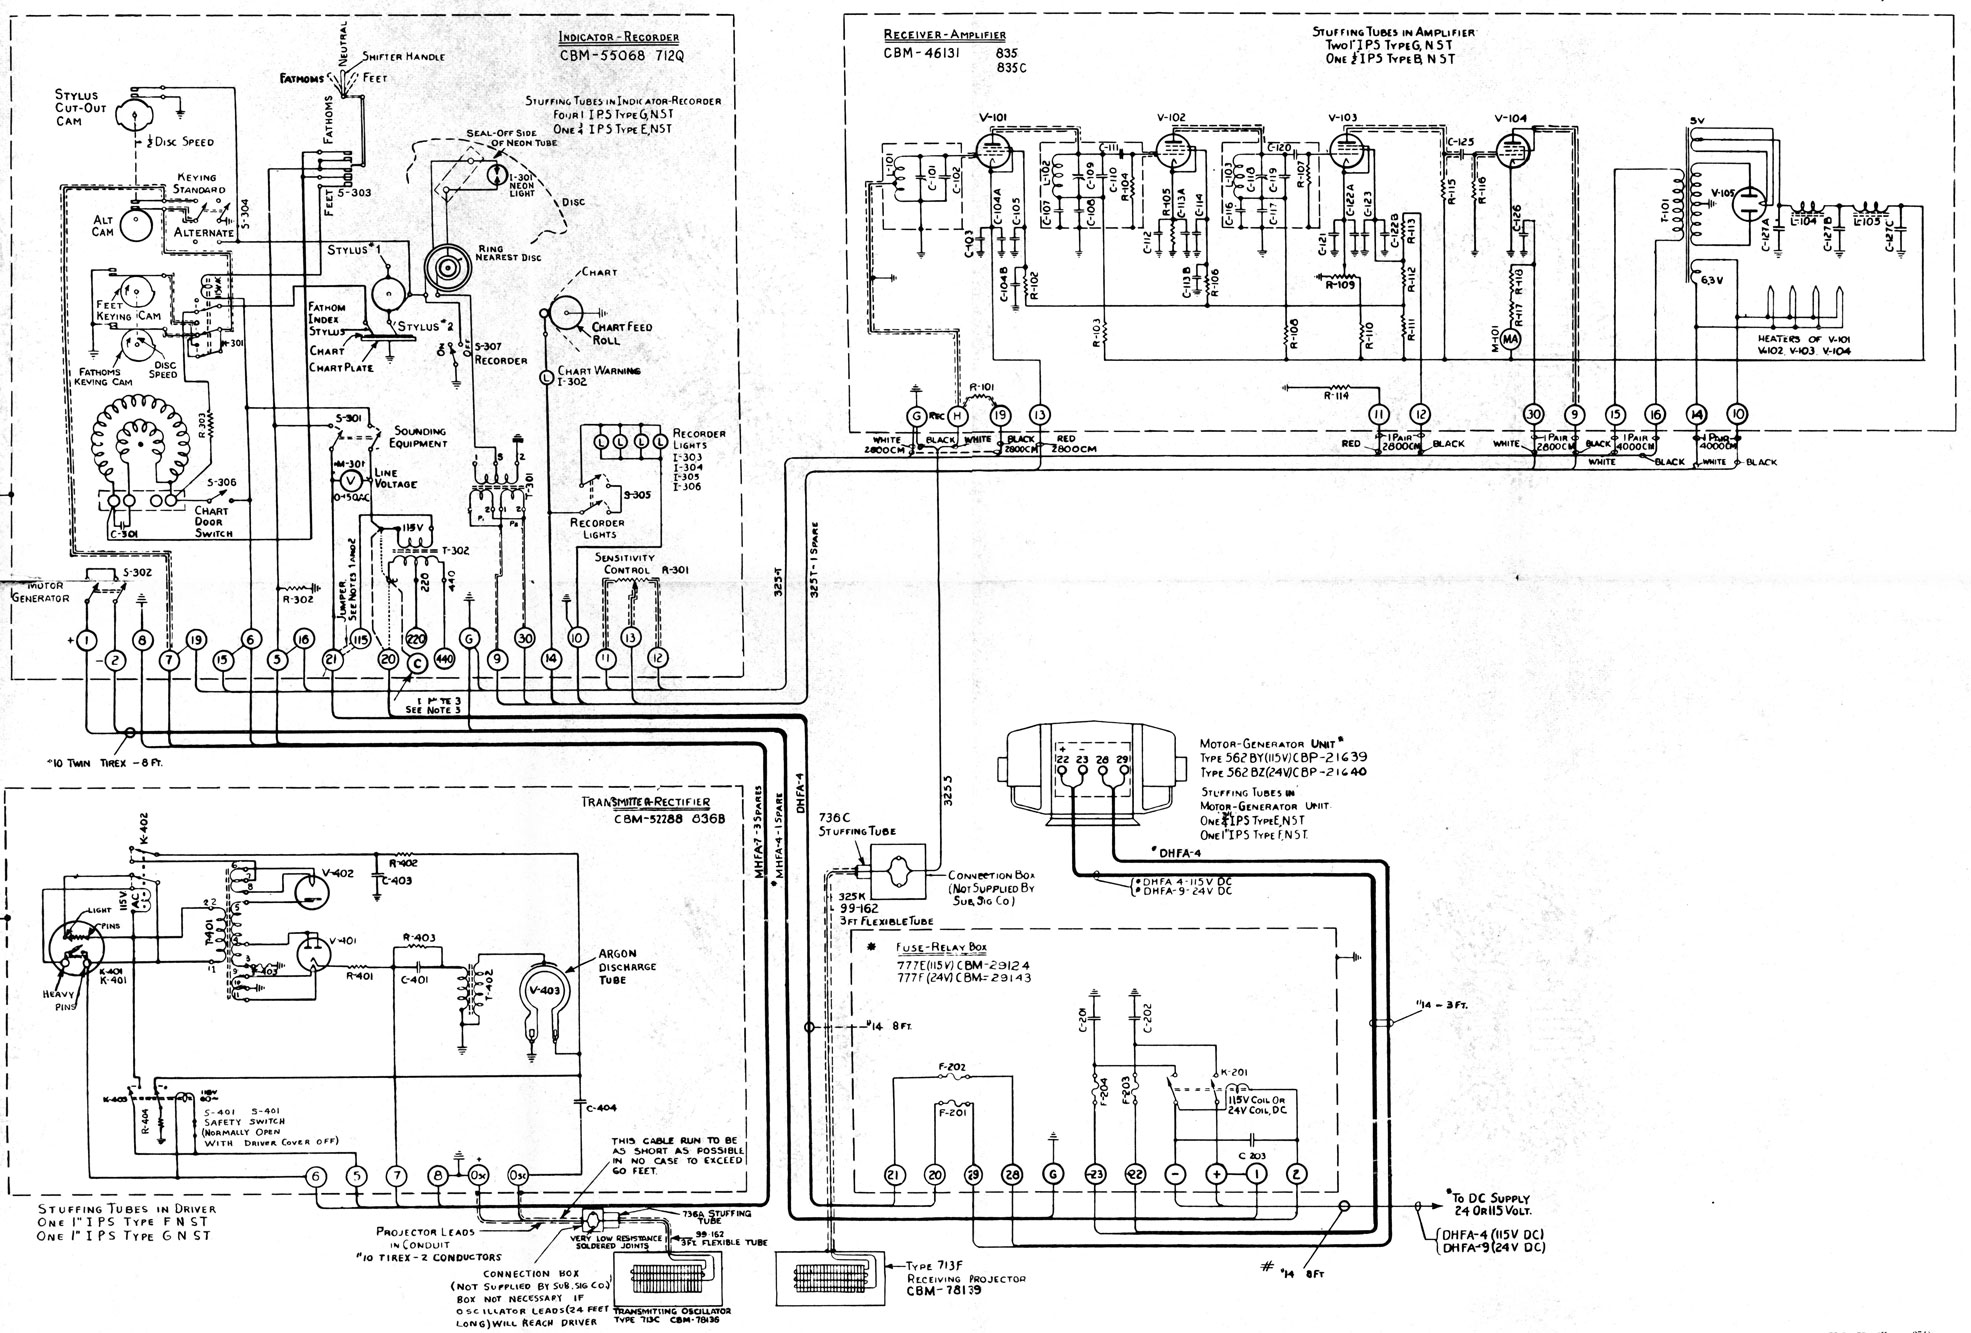 hight resolution of figure 15 6 schematic wiring diagram of the nj 9 sounding equipment